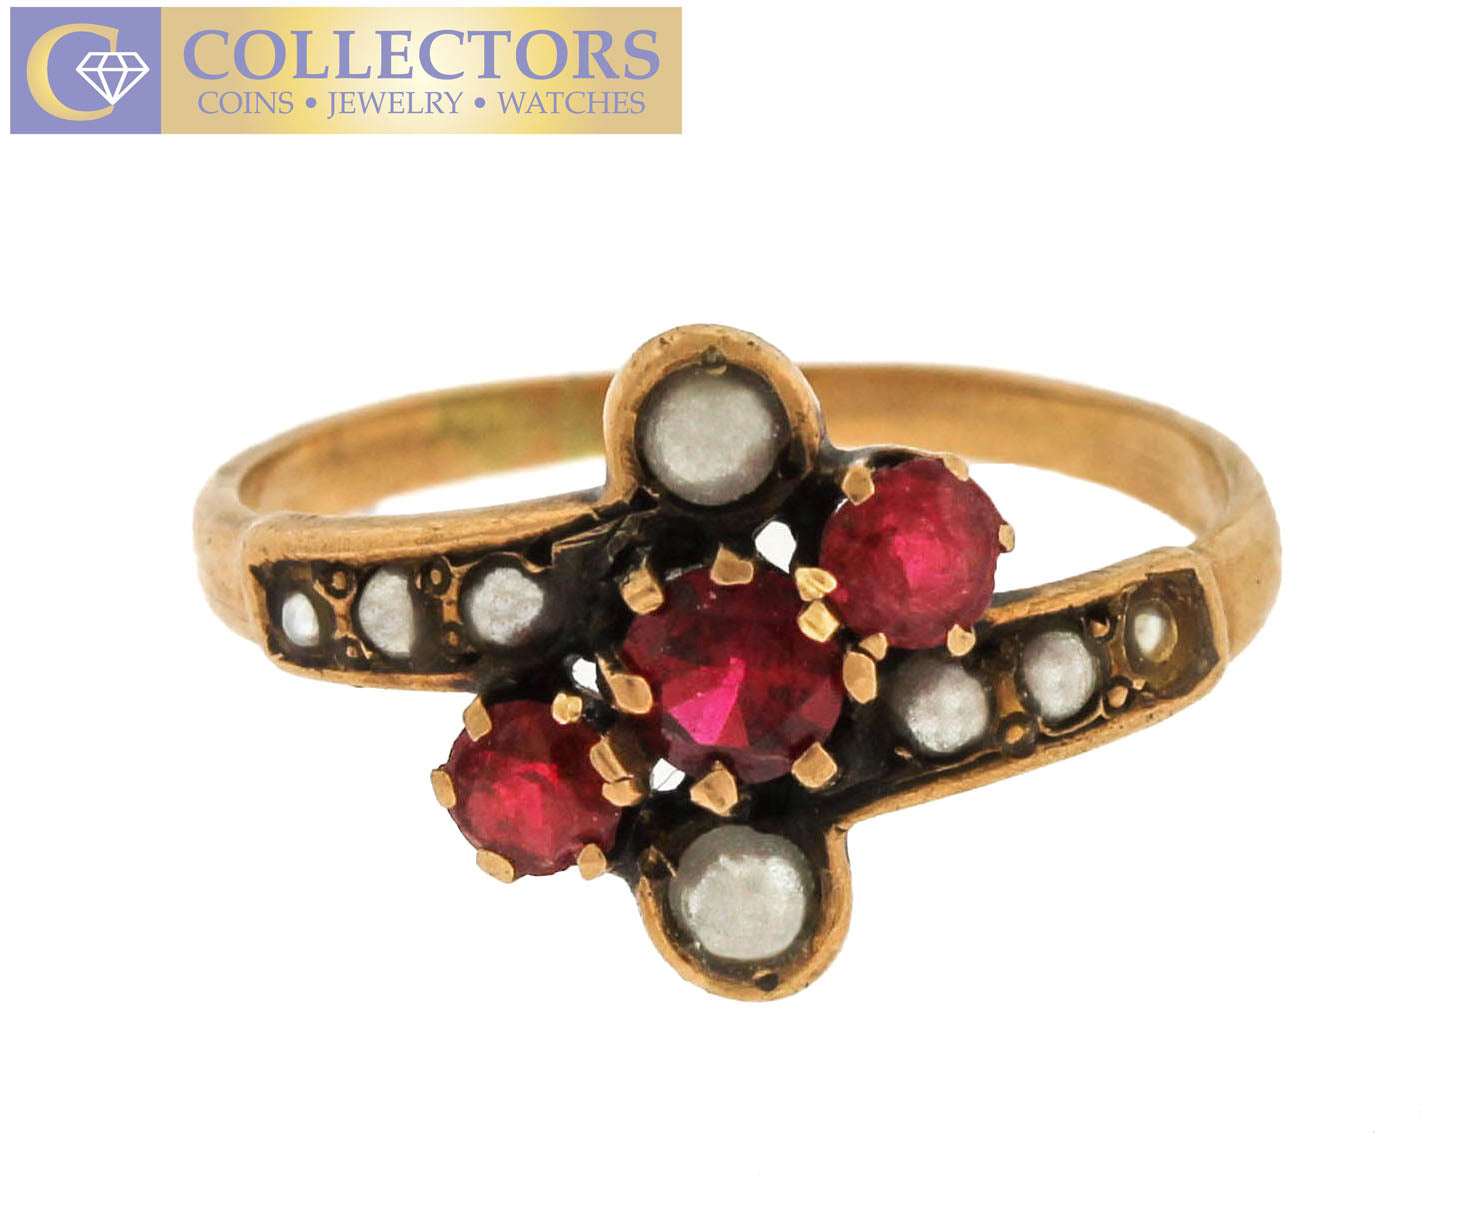 Lovely Ladies Antique Estate 14K Yellow Gold Pink Tourmaline Seed Pearl Ring